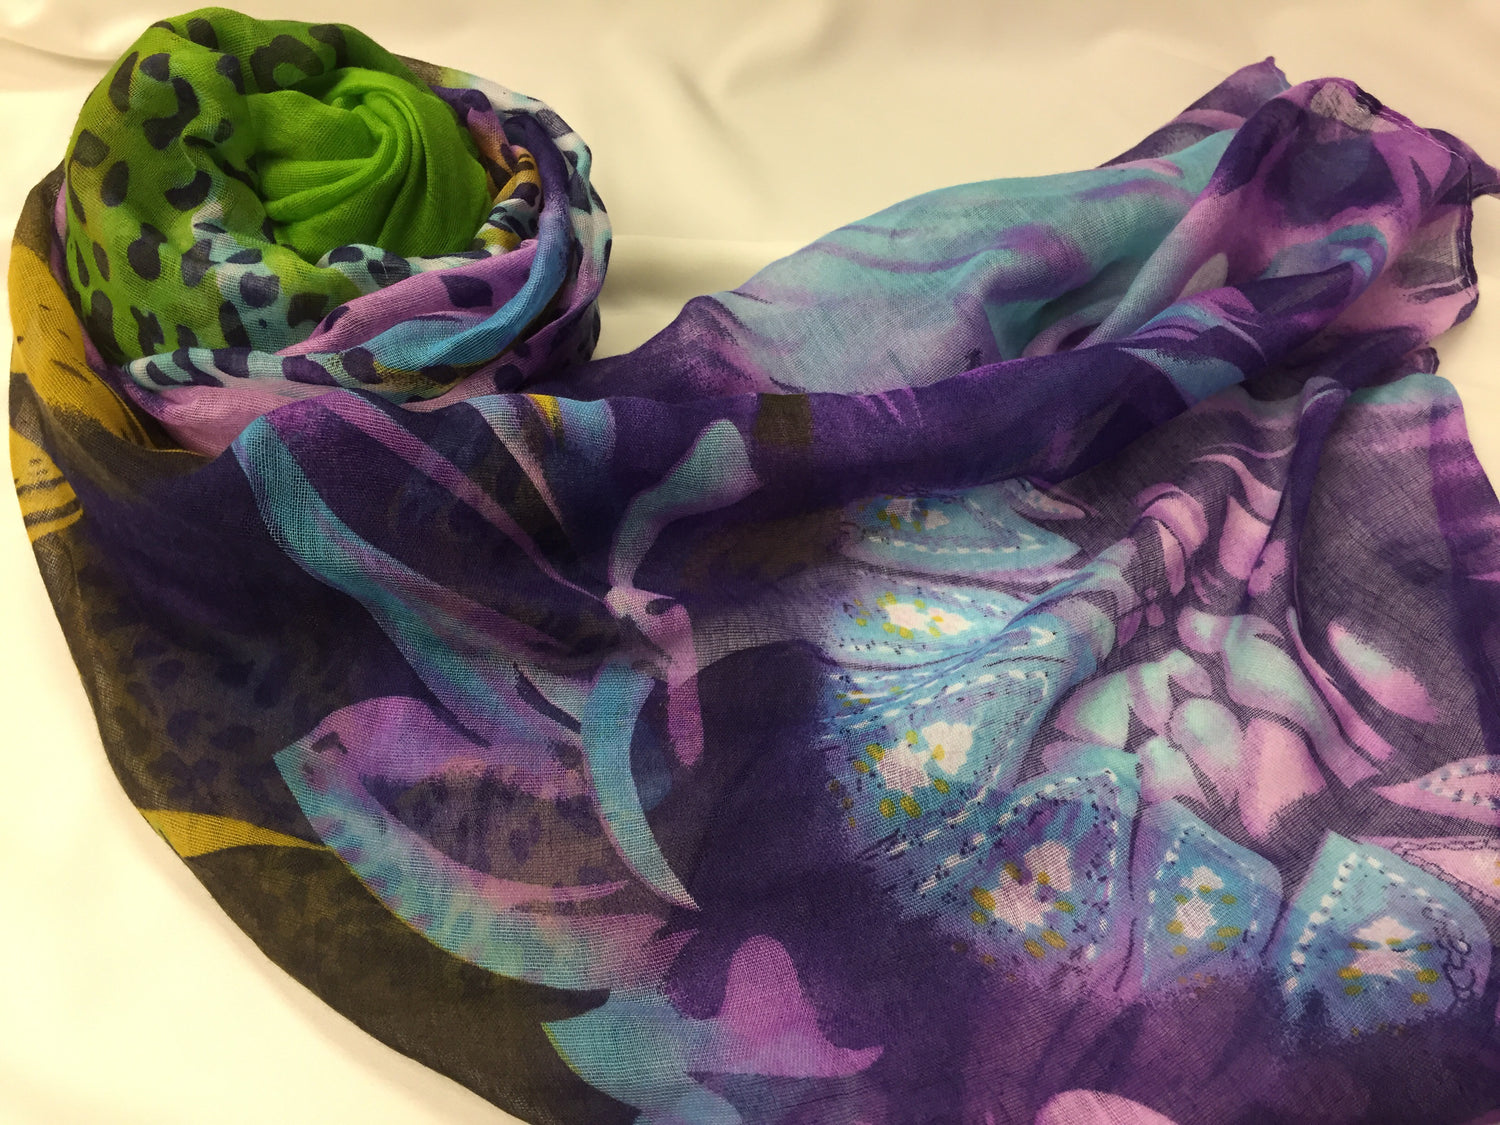 purple and green print hijab with cheetah print and floral